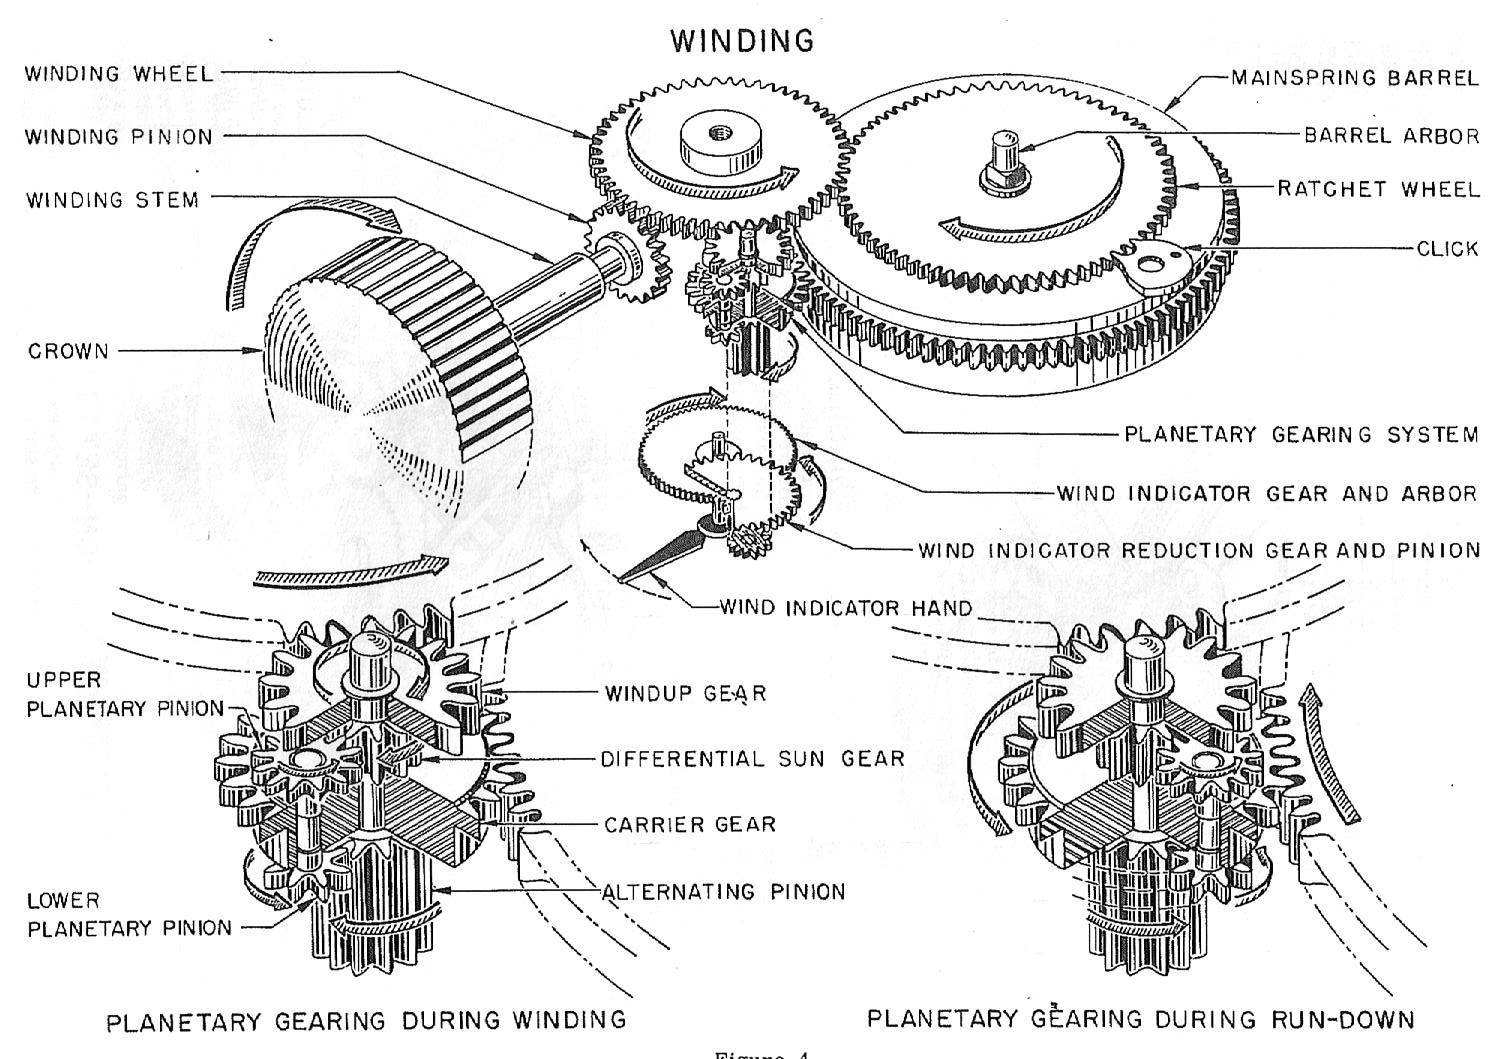 pocket watch movement diagram 7wire ventures 10. hamilton m 22 chronometer watch. | the mariner's